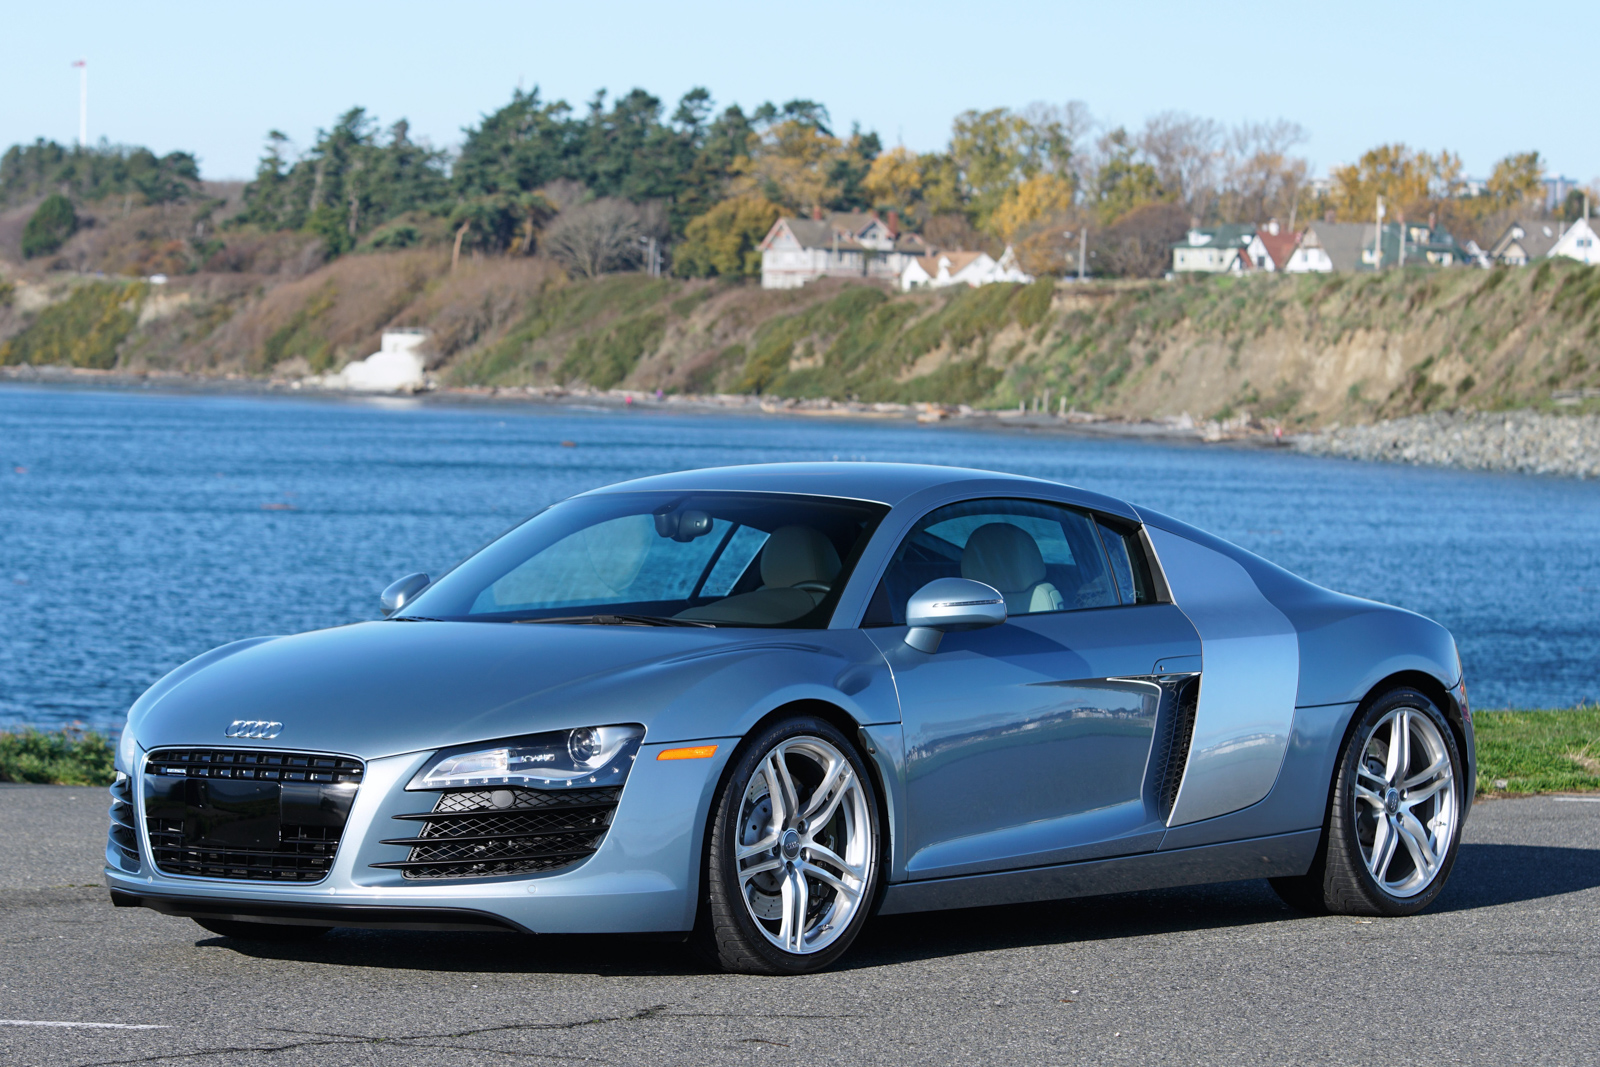 2008 Audi R8 Coupe 6-Speed for sale